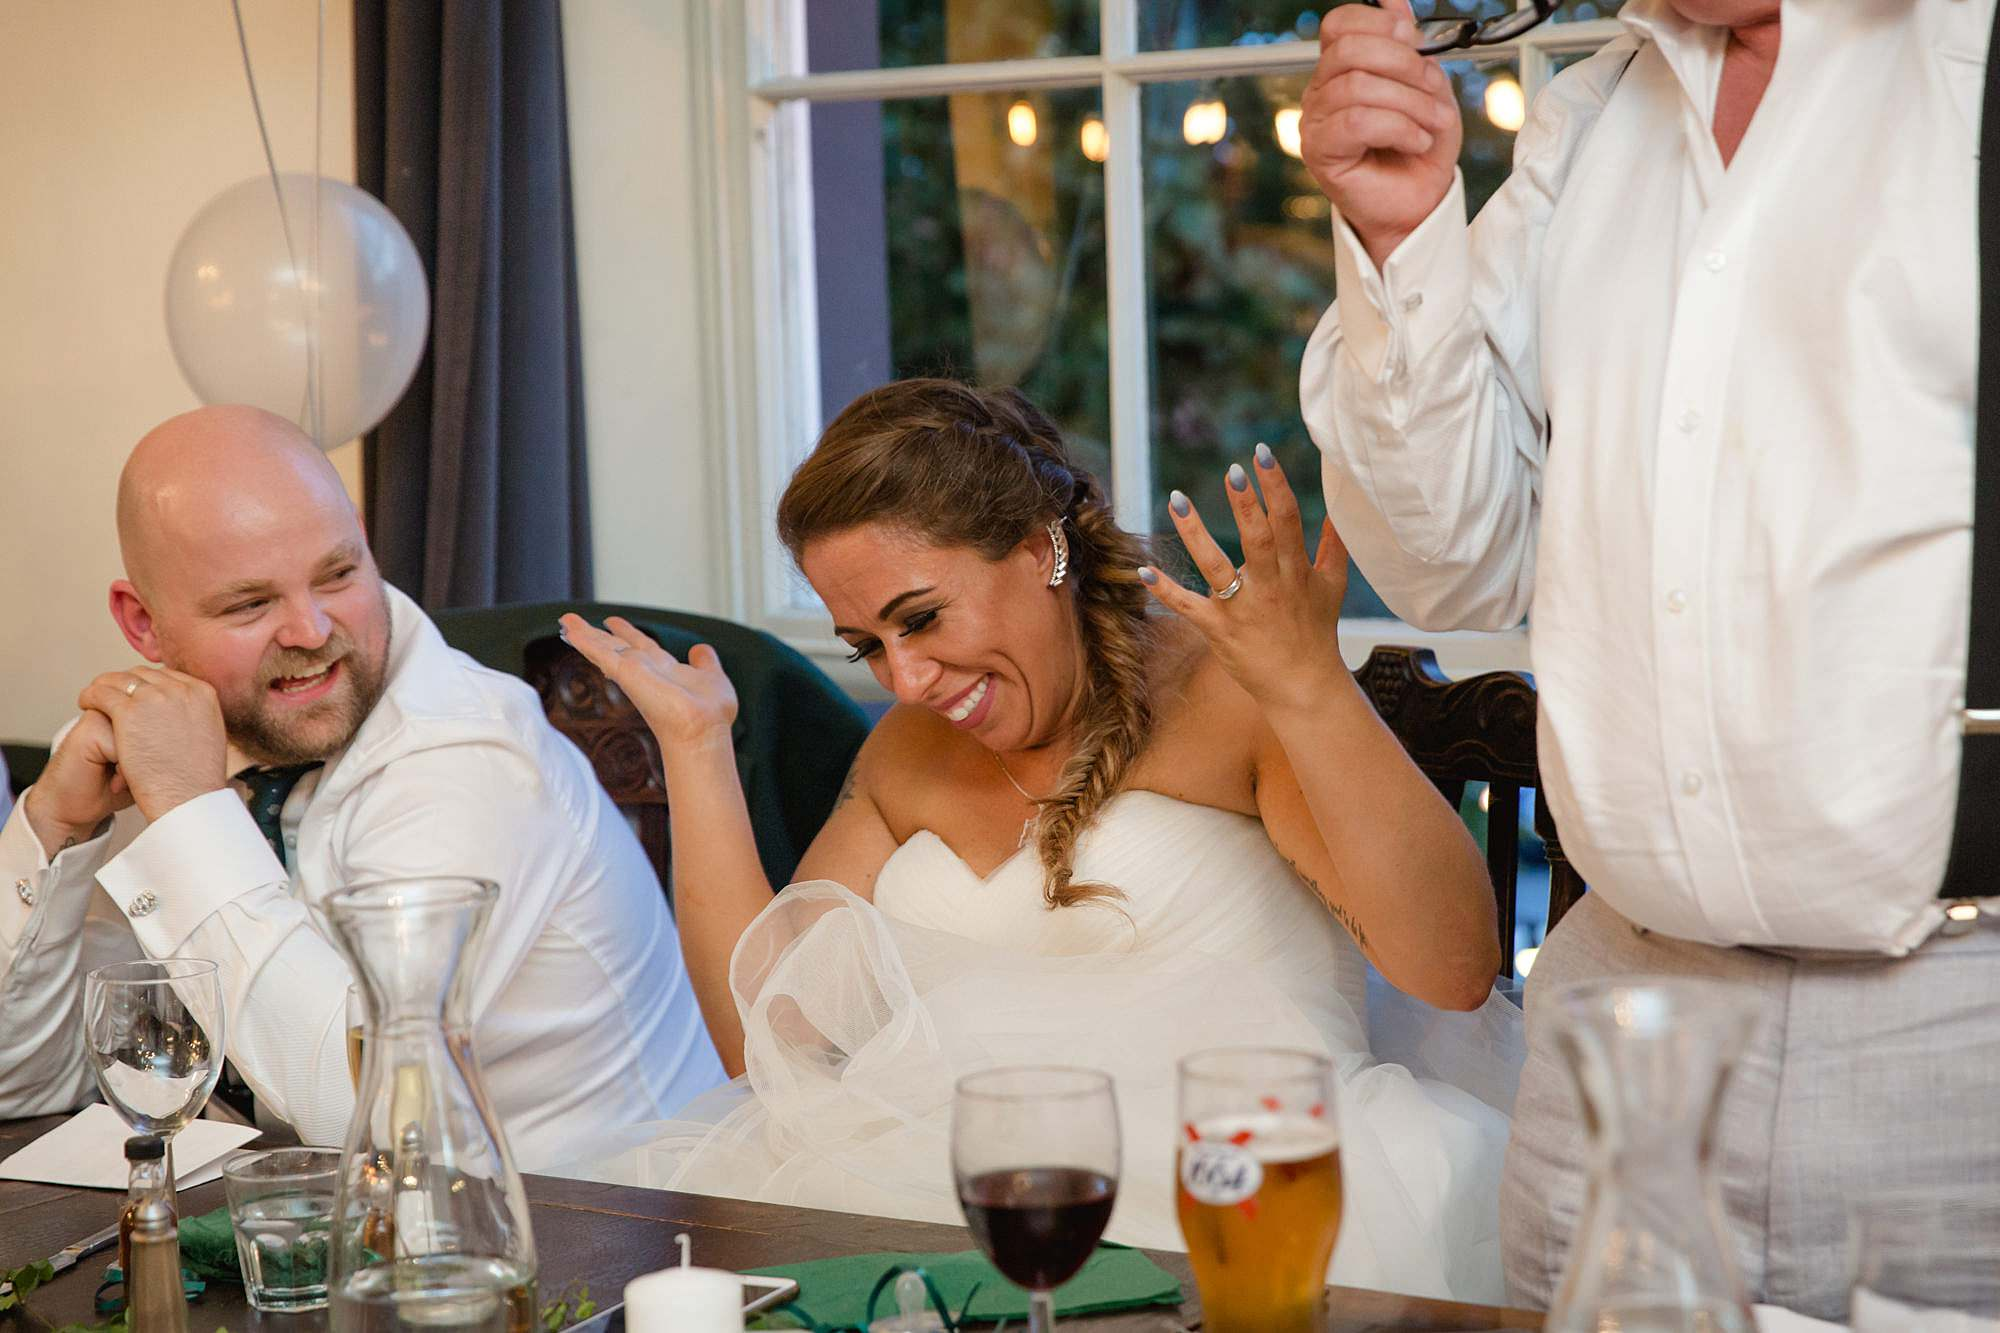 Prince albert camden wedding bride's reaction in speeches